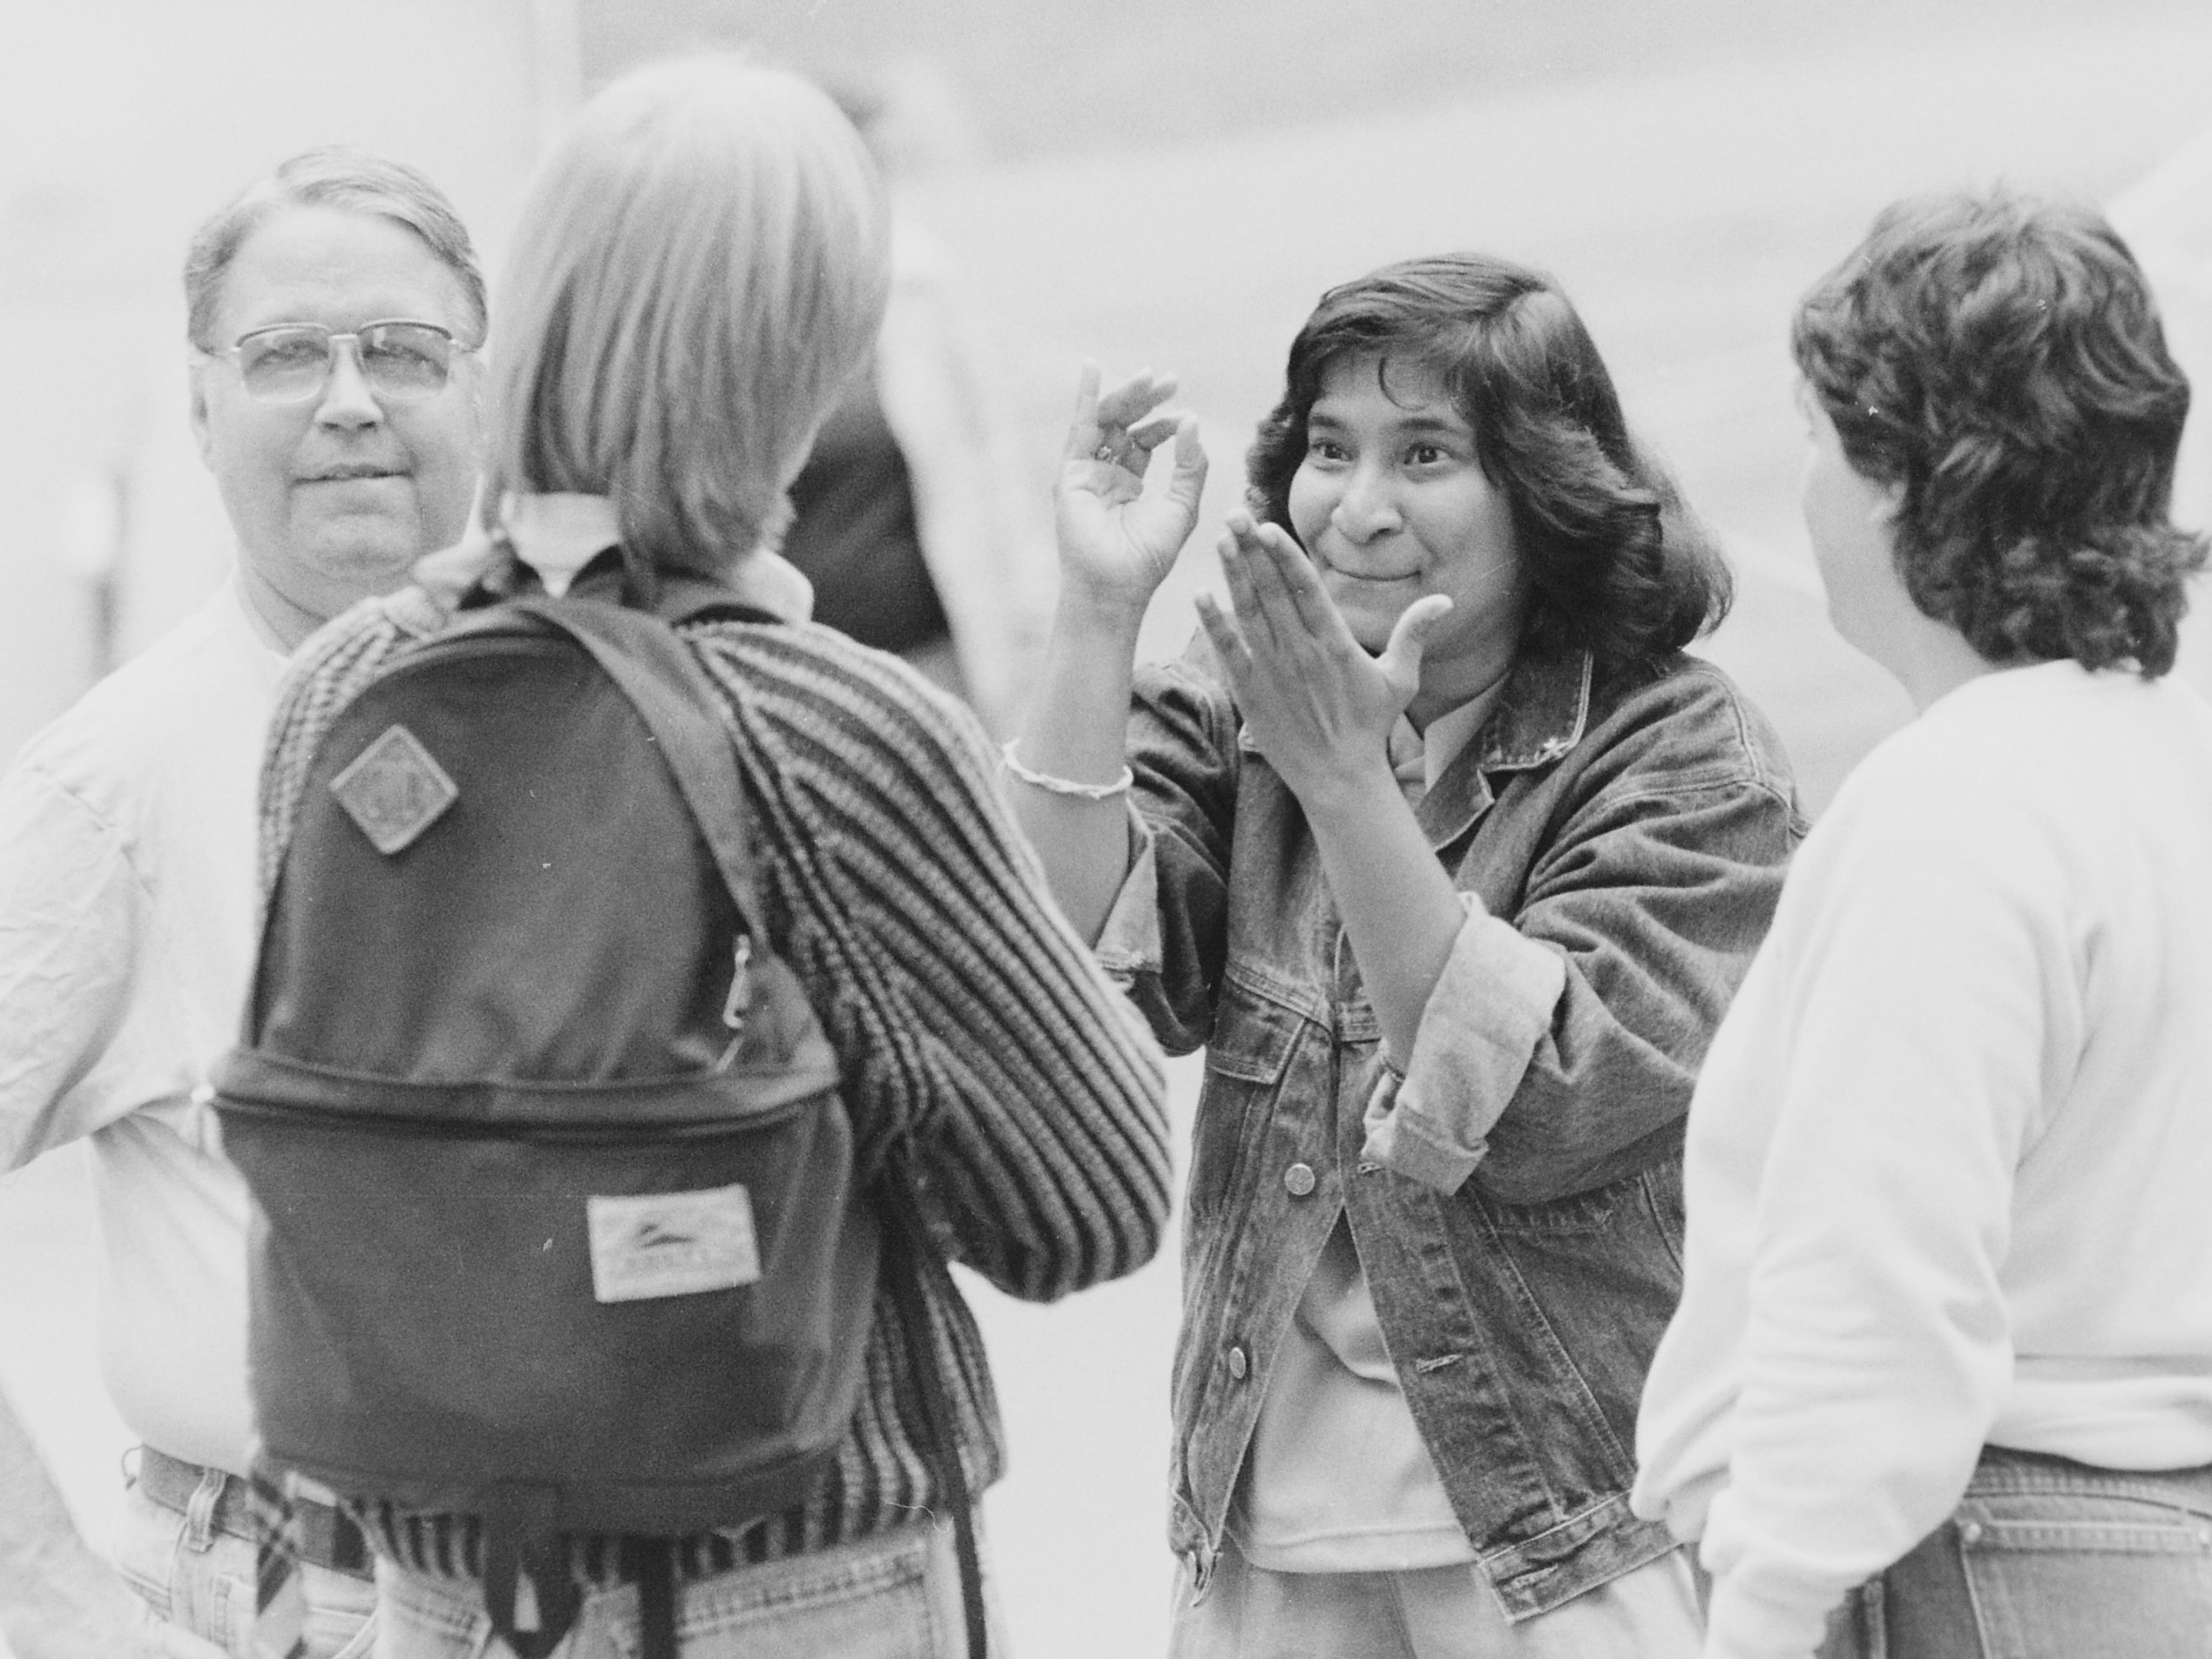 08/31/88Conference For The Deaf